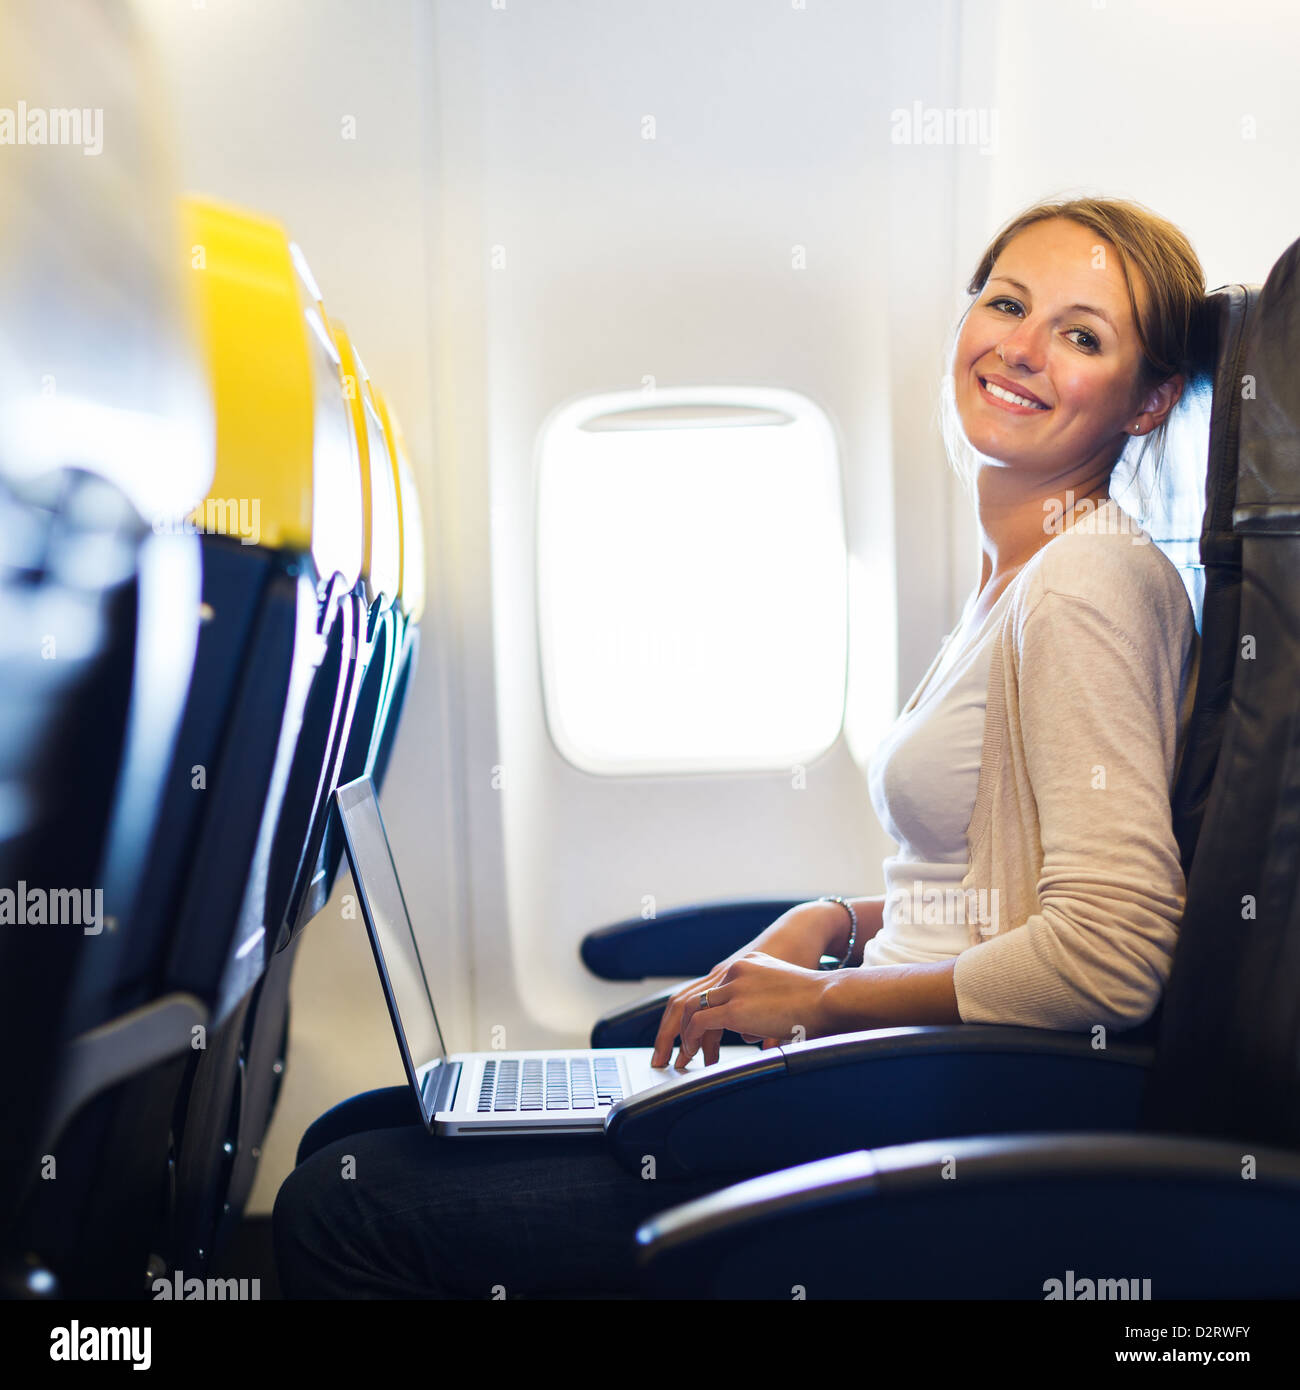 Young woman working on her laptop computer on board of an airplane during the flight - Stock Image